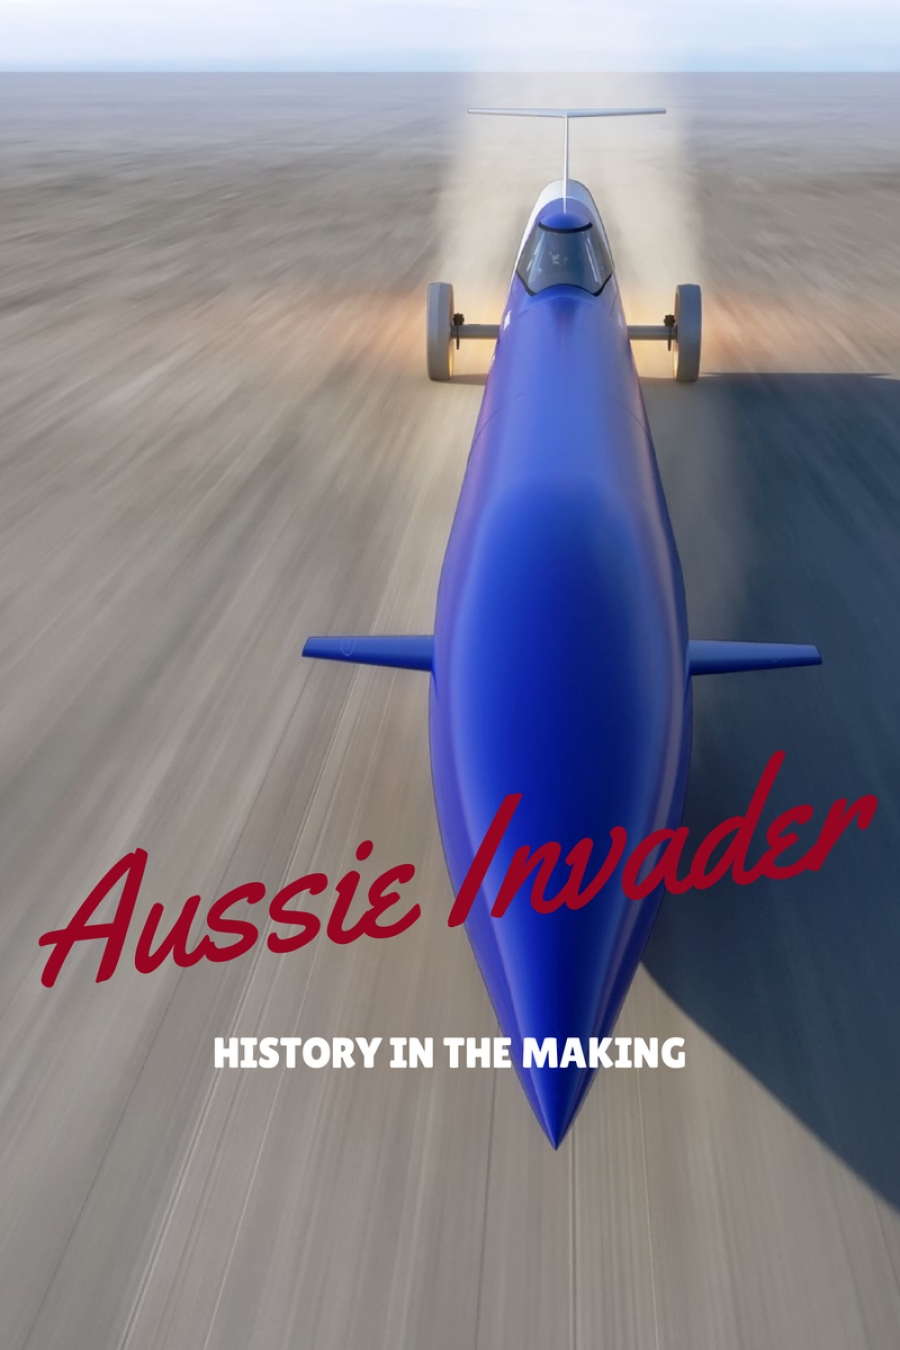 Aussie Invader: History in the making